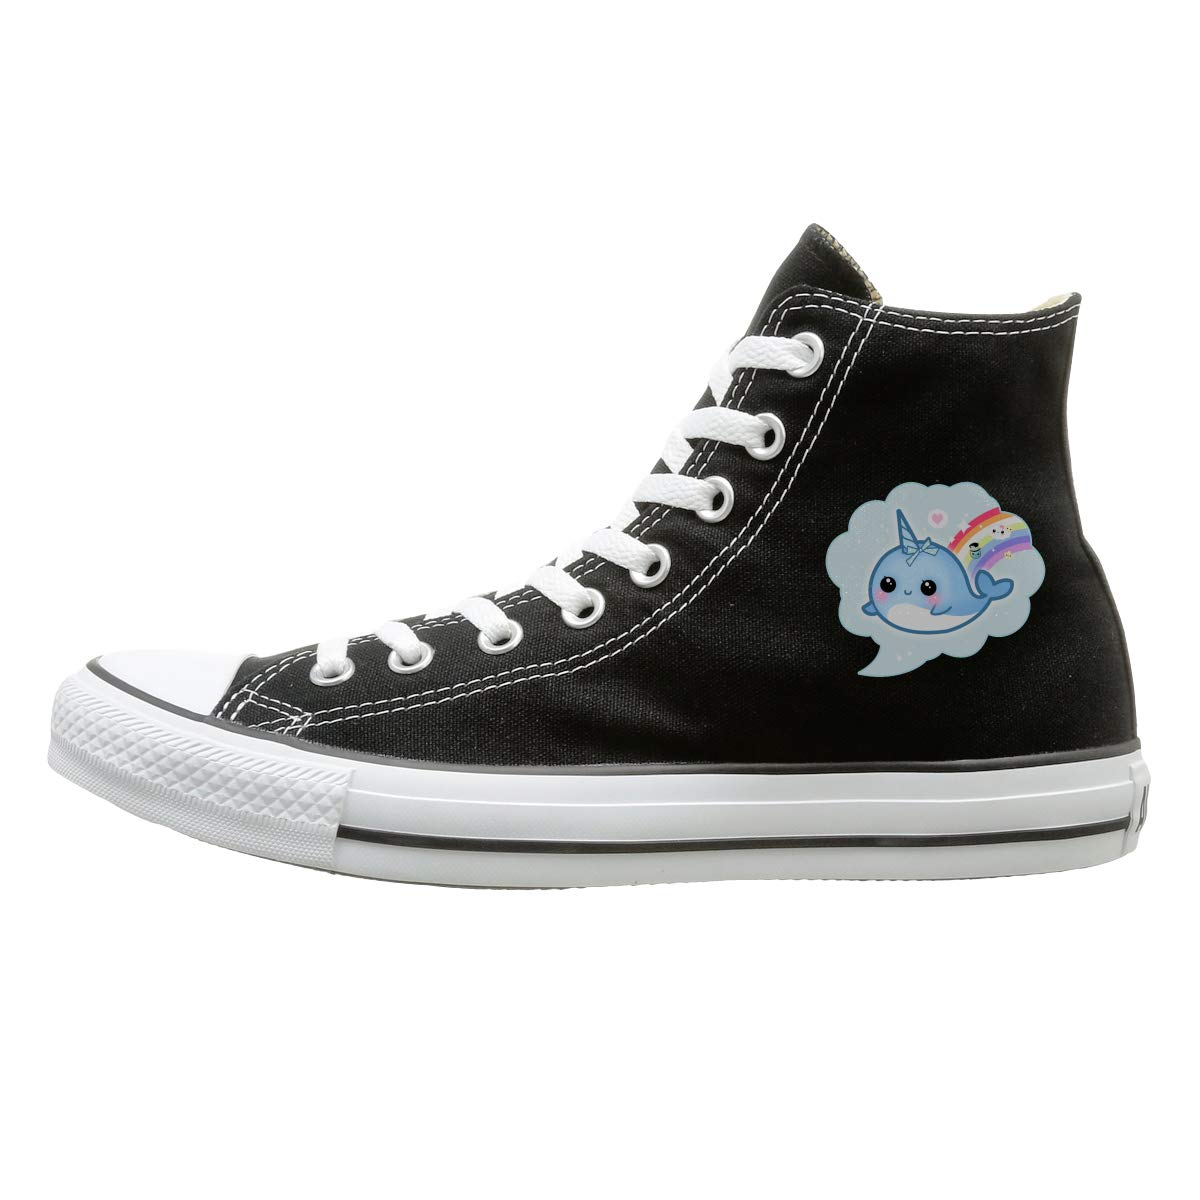 FOOOKL Cute Kawaii Narwhal Canvas Shoes High Top Sport Black Sneakers Unisex Style